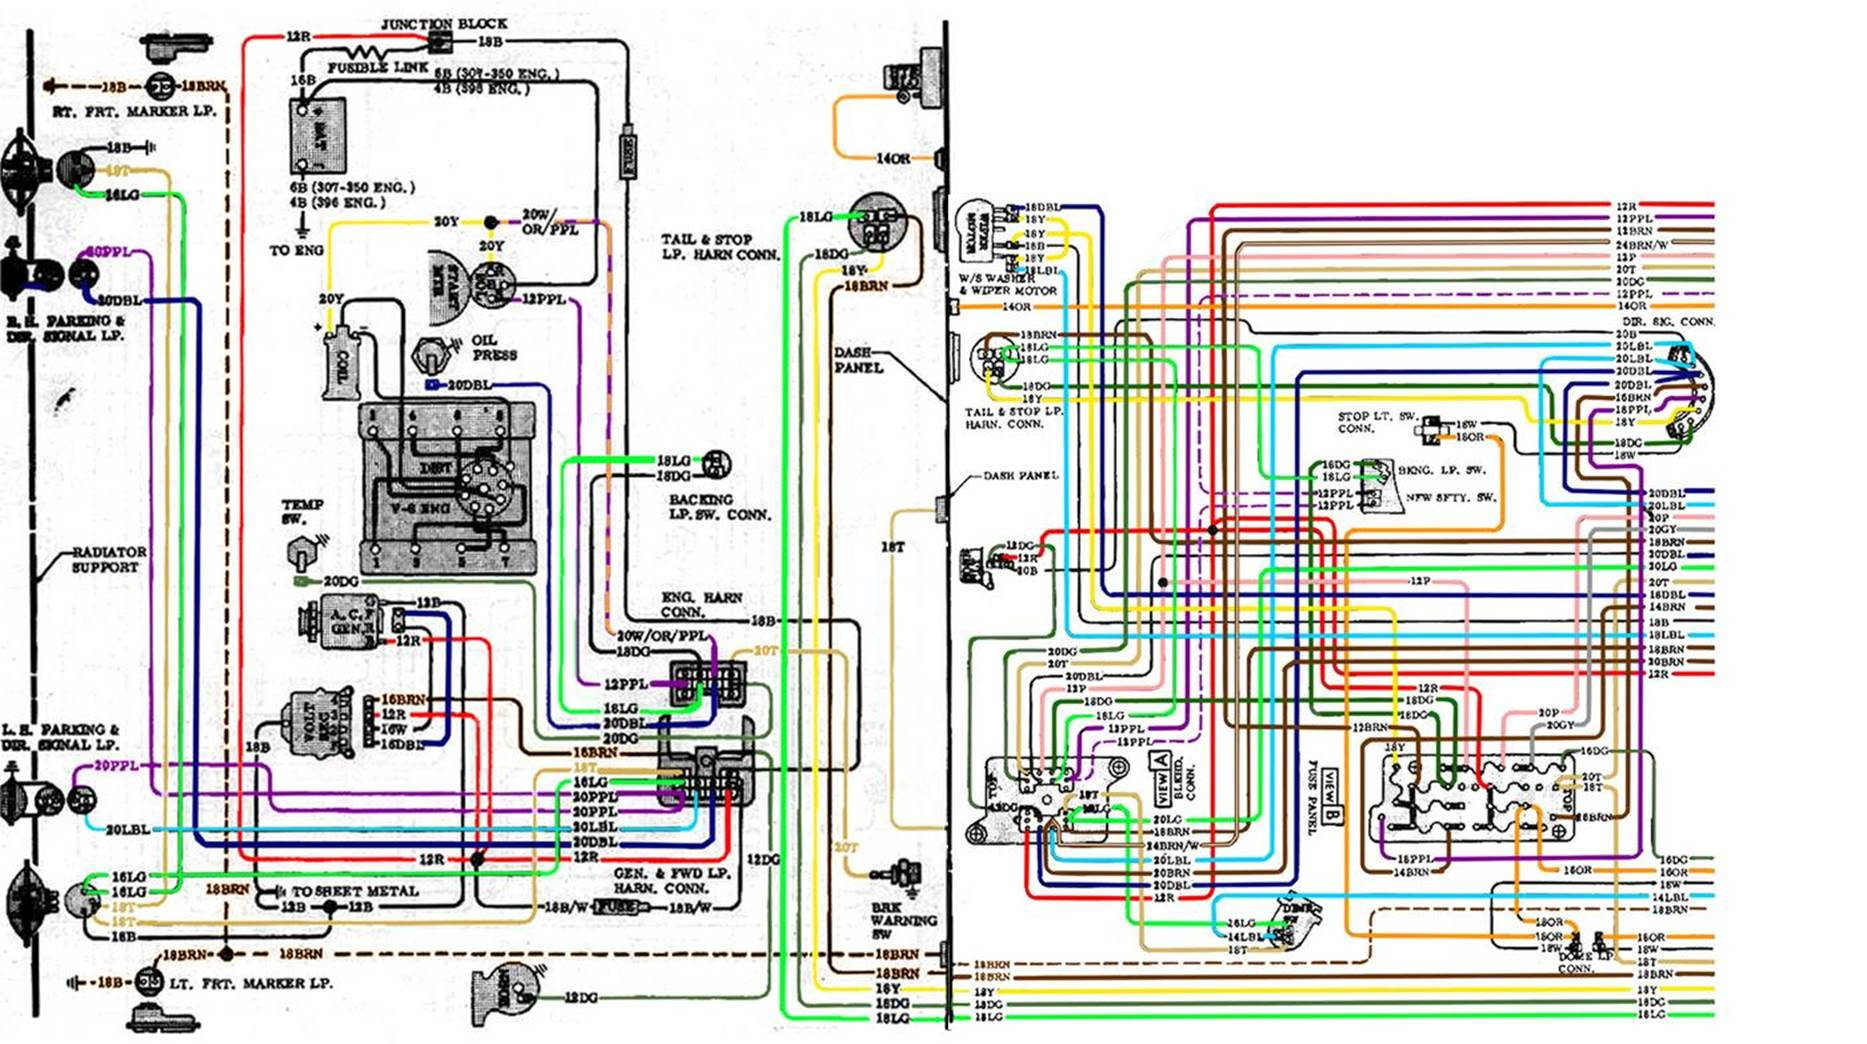 image002 67 72 chevy wiring diagram 1969 mustang wiring harness diagram at alyssarenee.co